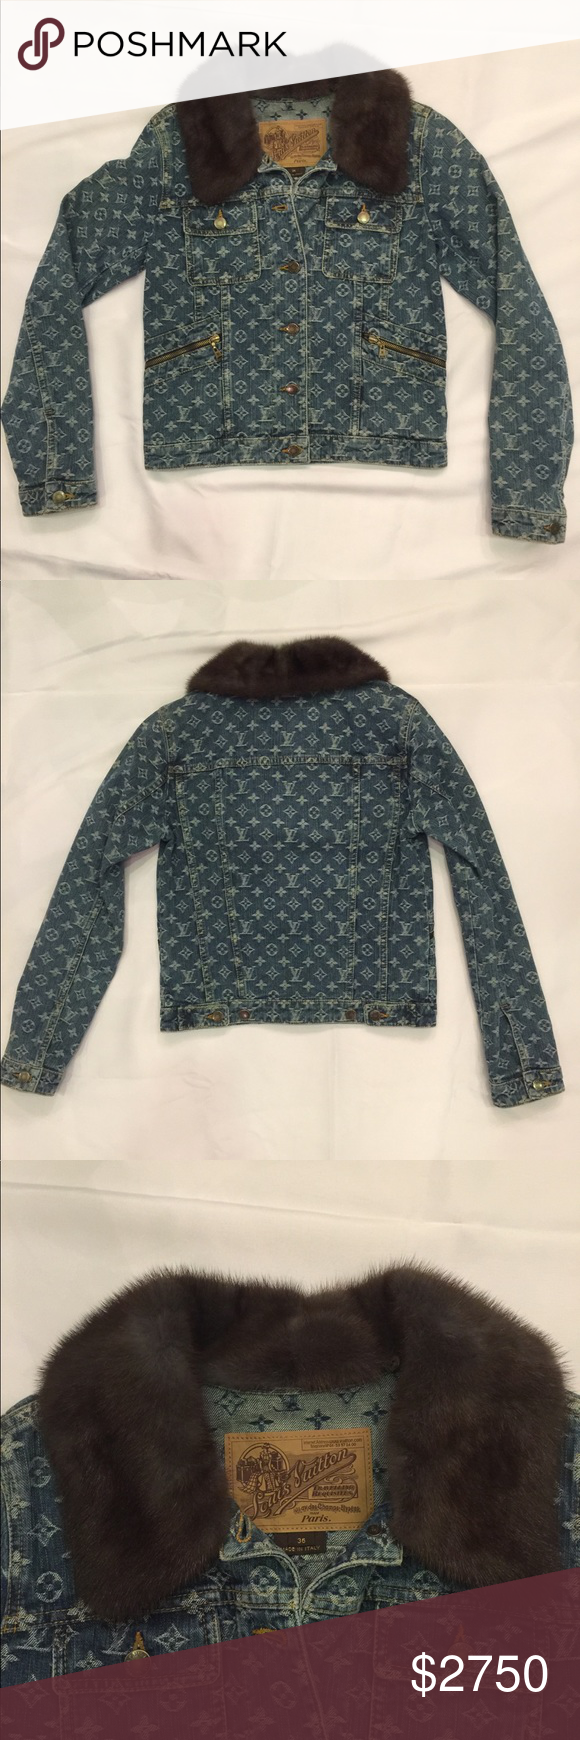 Louis Vuitton Denim Jacket and Mink Collar (With images